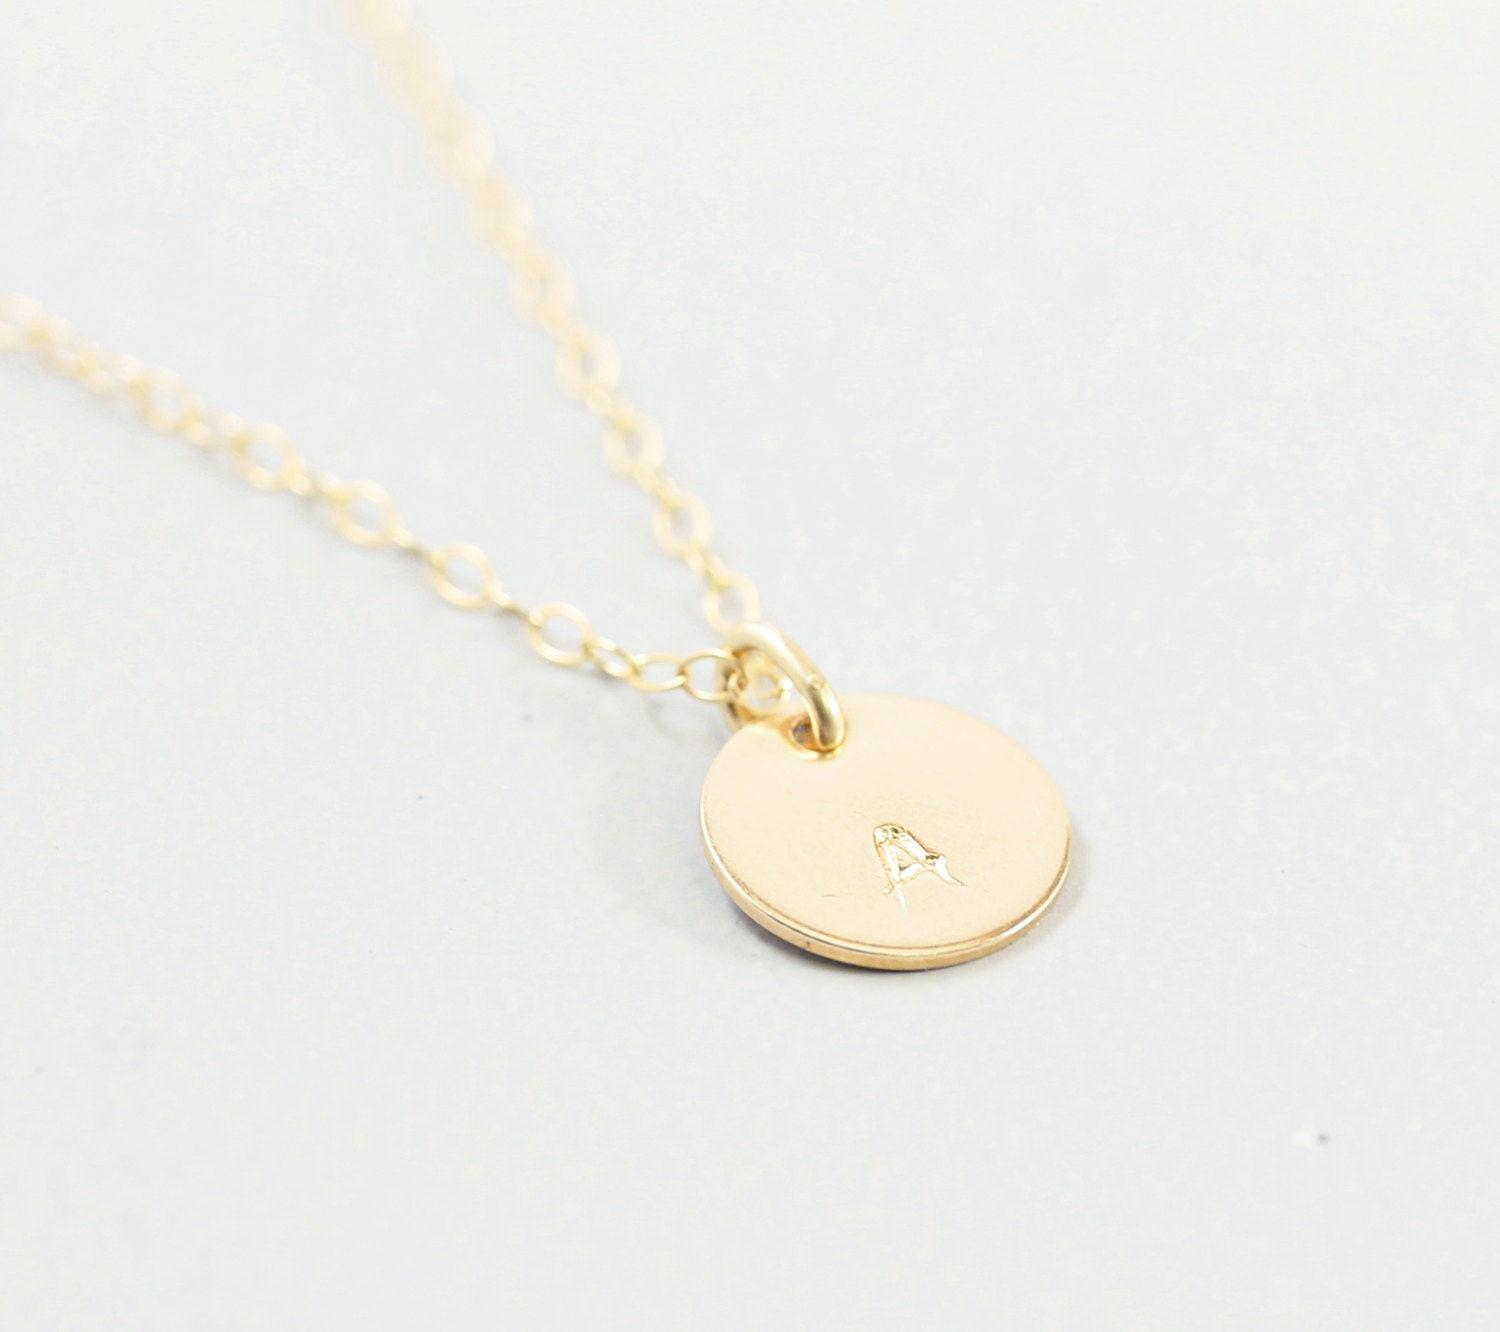 Personalized necklace 14k gold filled initial necklace gold for Gold filled jewelry